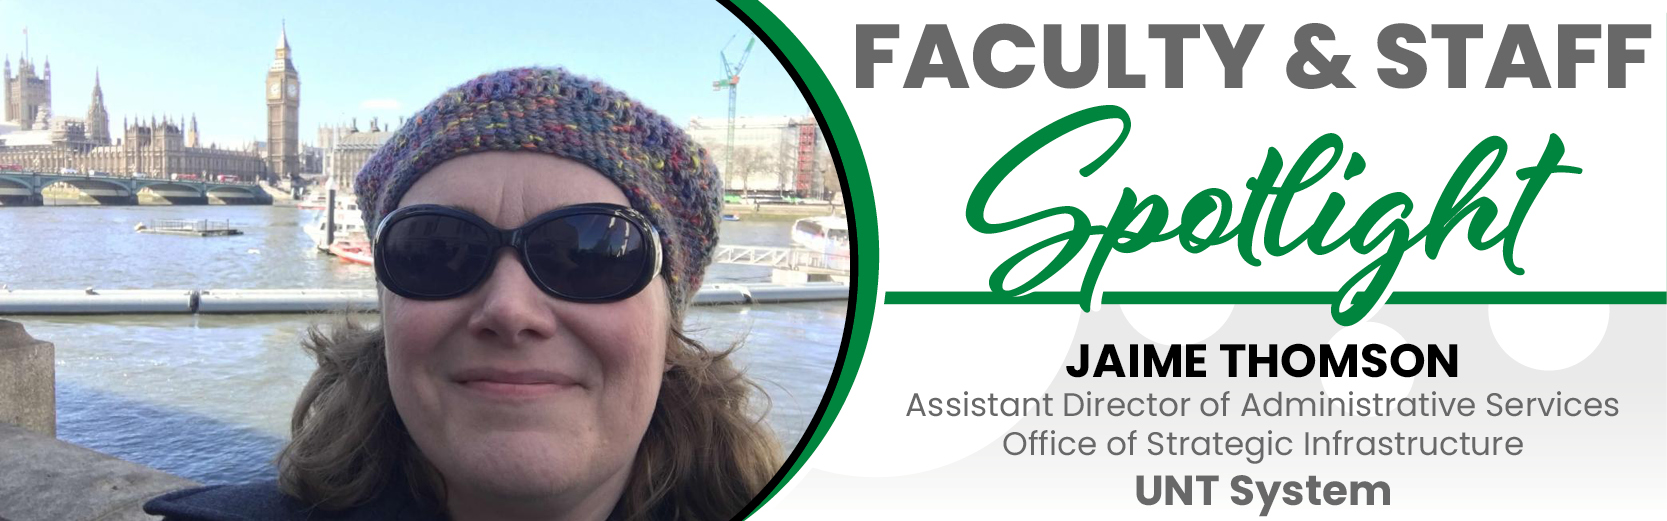 Faculty & Staff Spotlight: Jaime Thomson